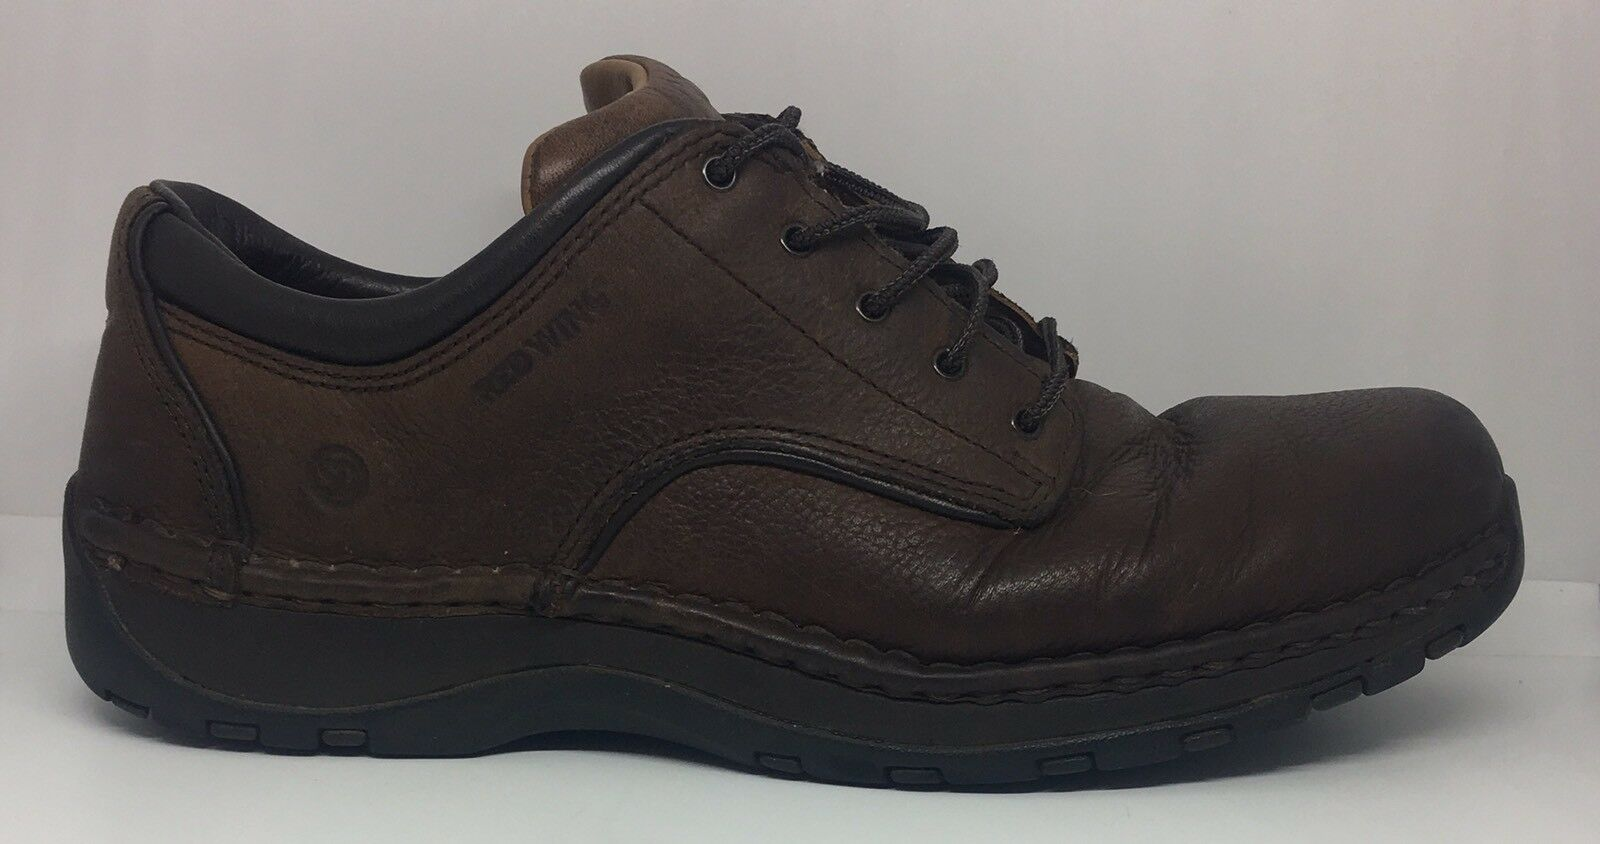 Red Wing Uomo Brown Pelle Work Safety Shoe Oxford Aluminum Toe #6704 Sz 10.5 D